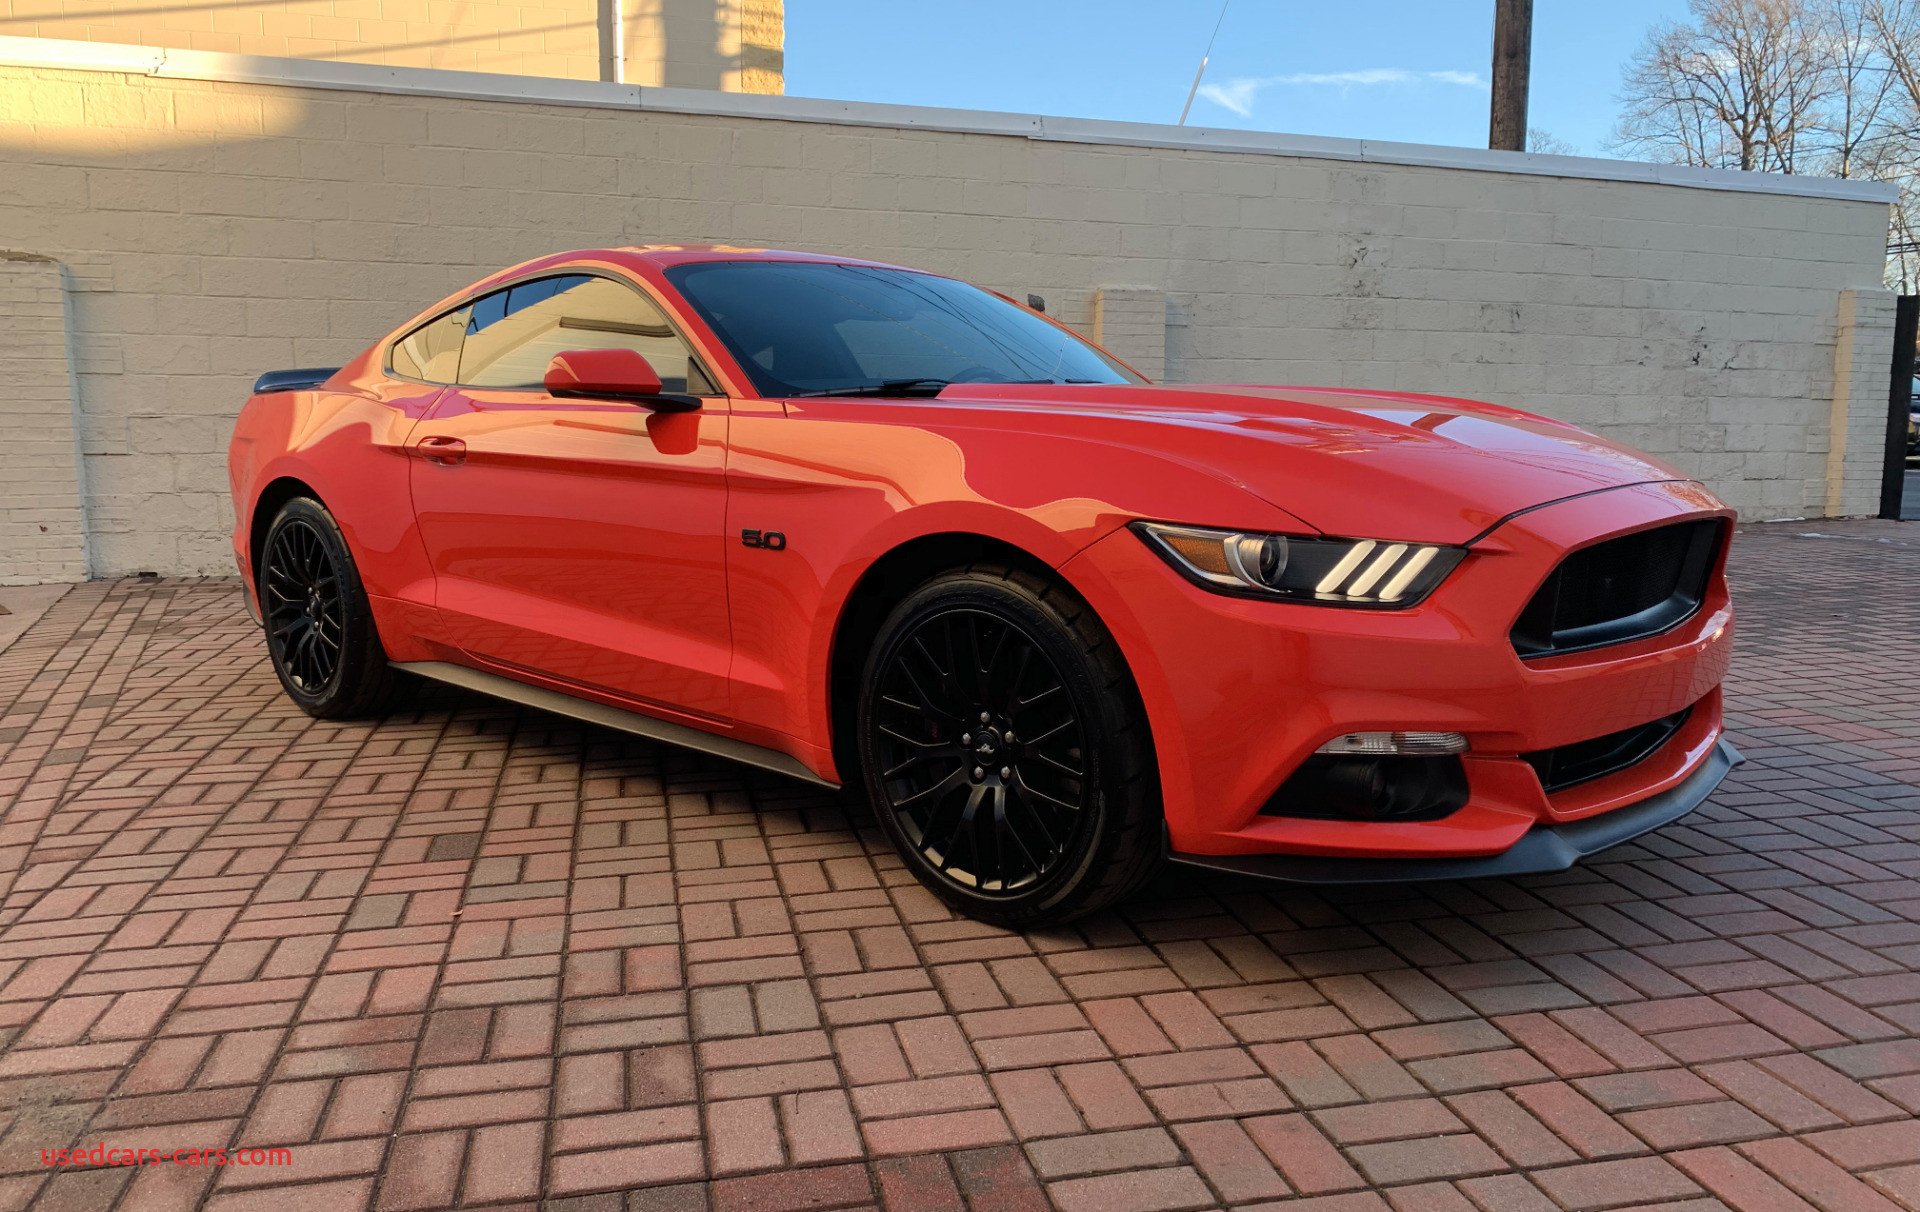 Ford Mustang Gt For Sale Near Me